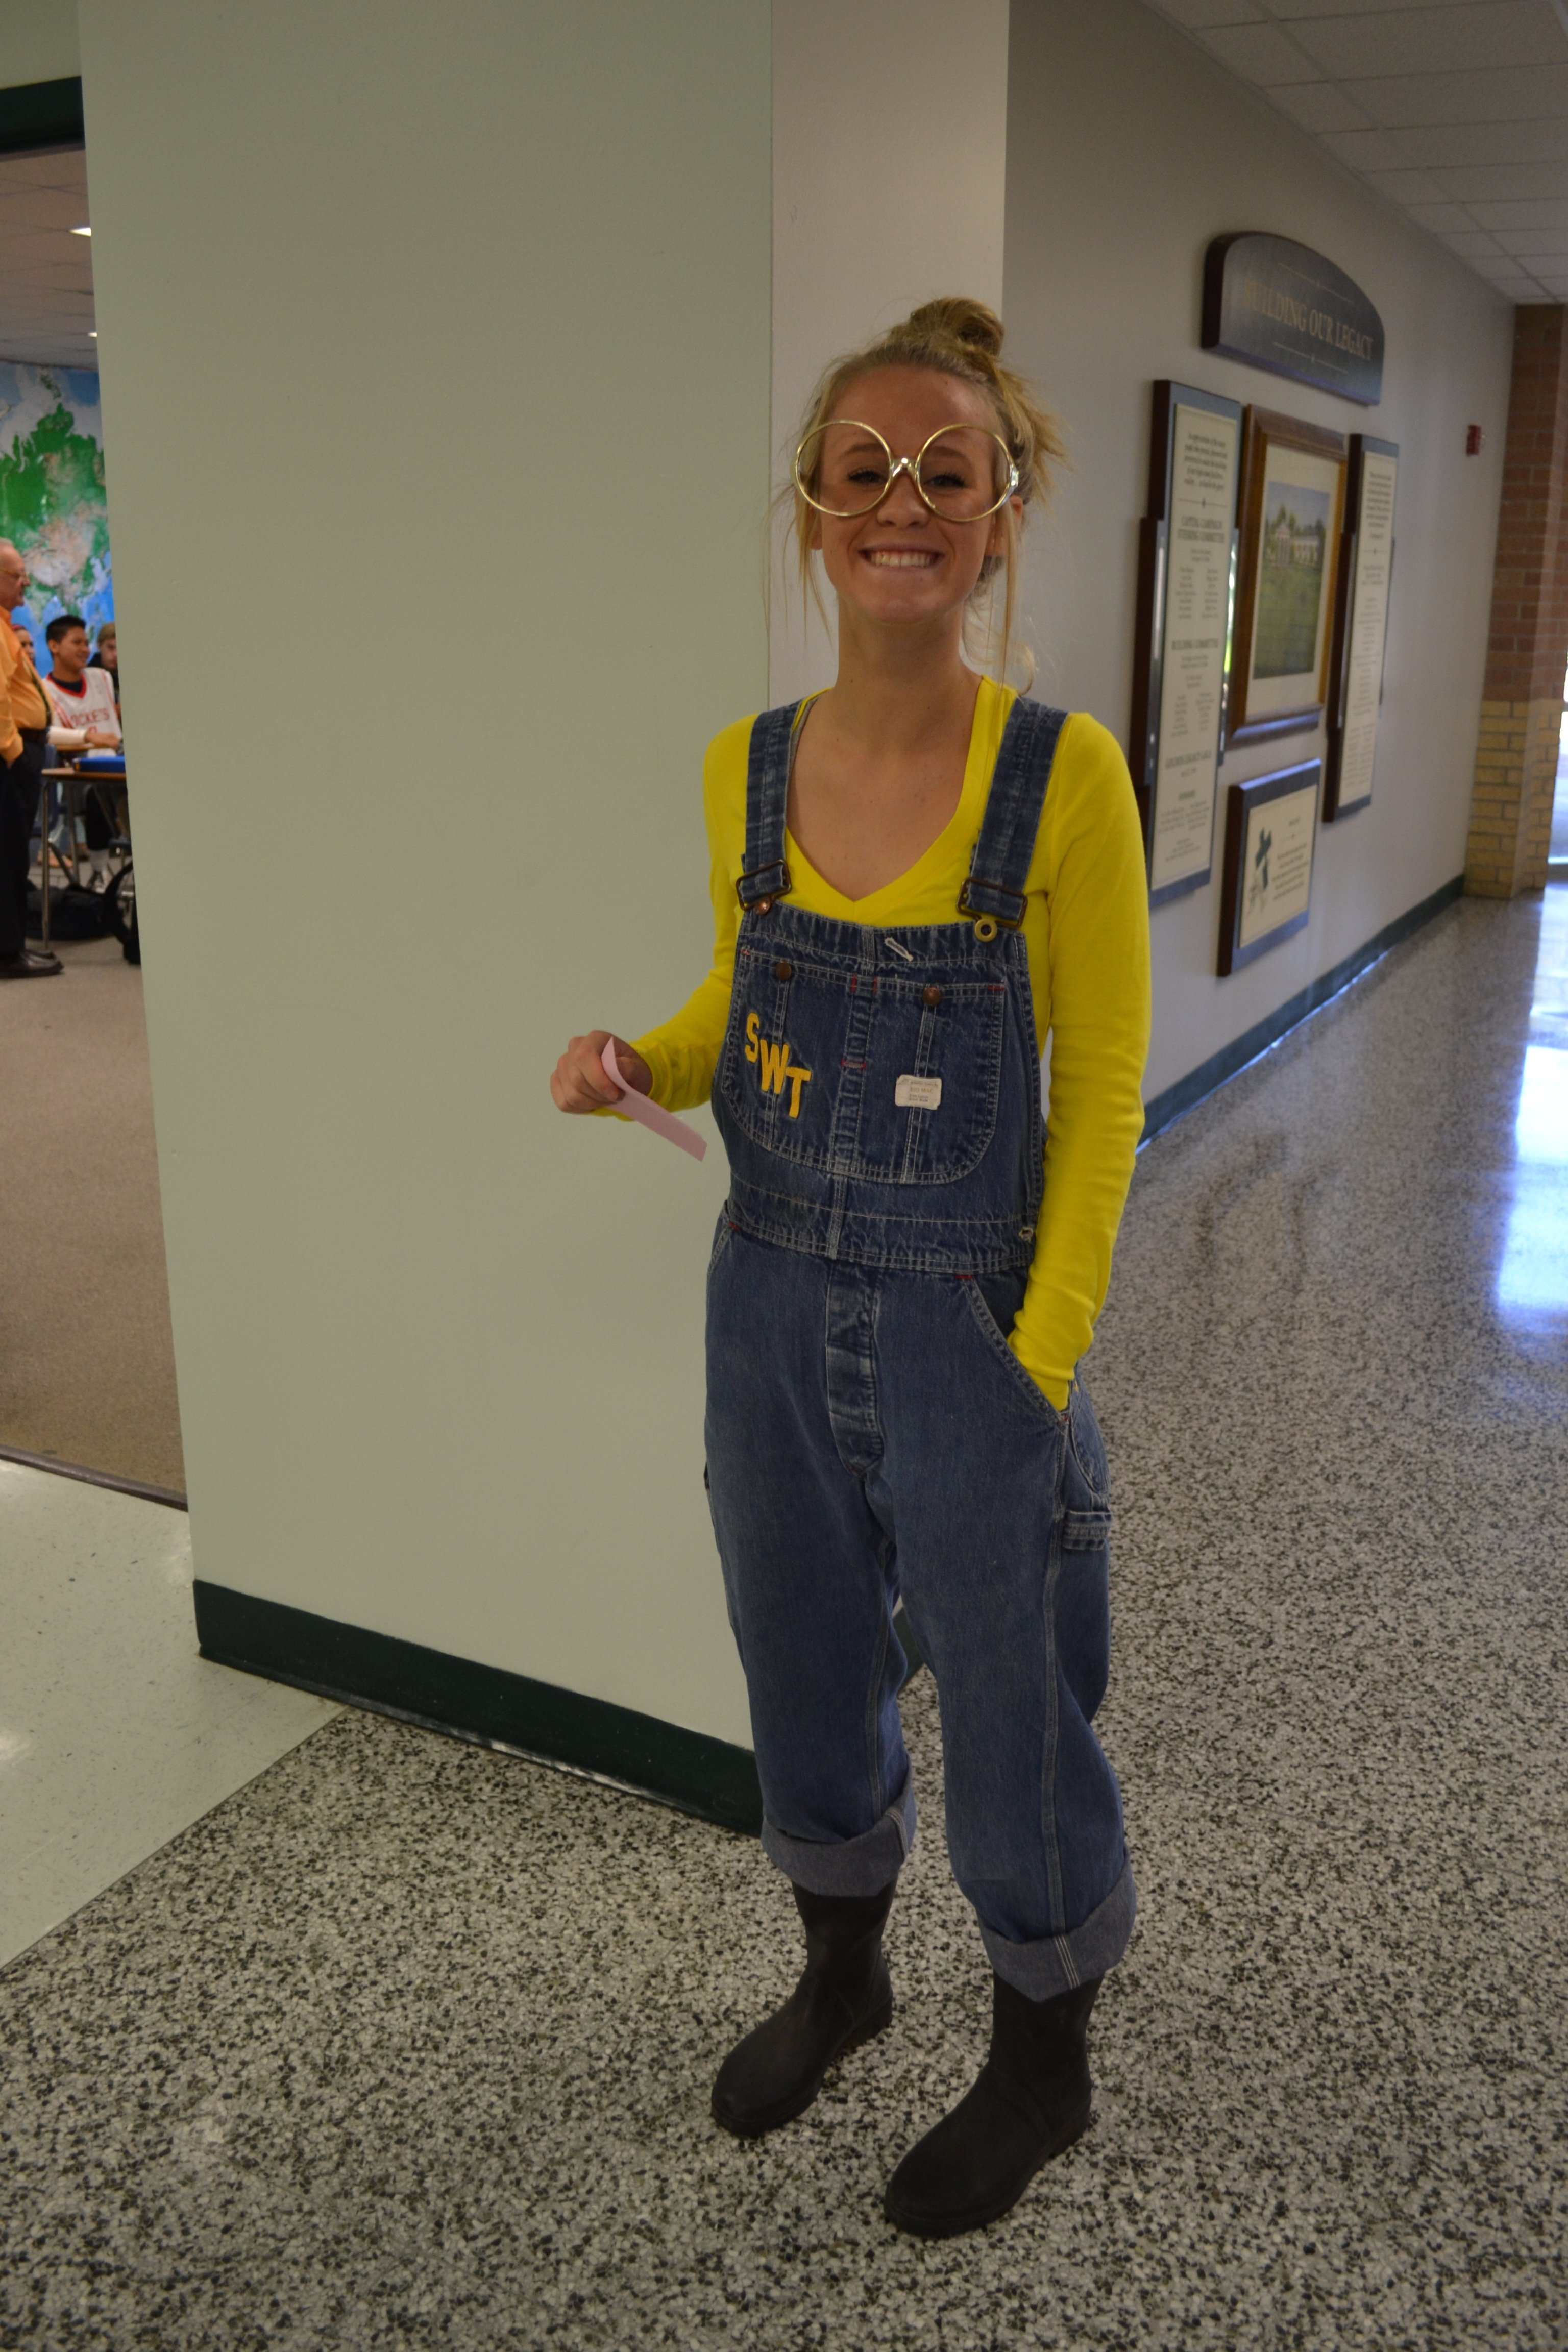 10 Great Celebrity Day Ideas For School celebrity character day high school homecoming pinterest 3 2021